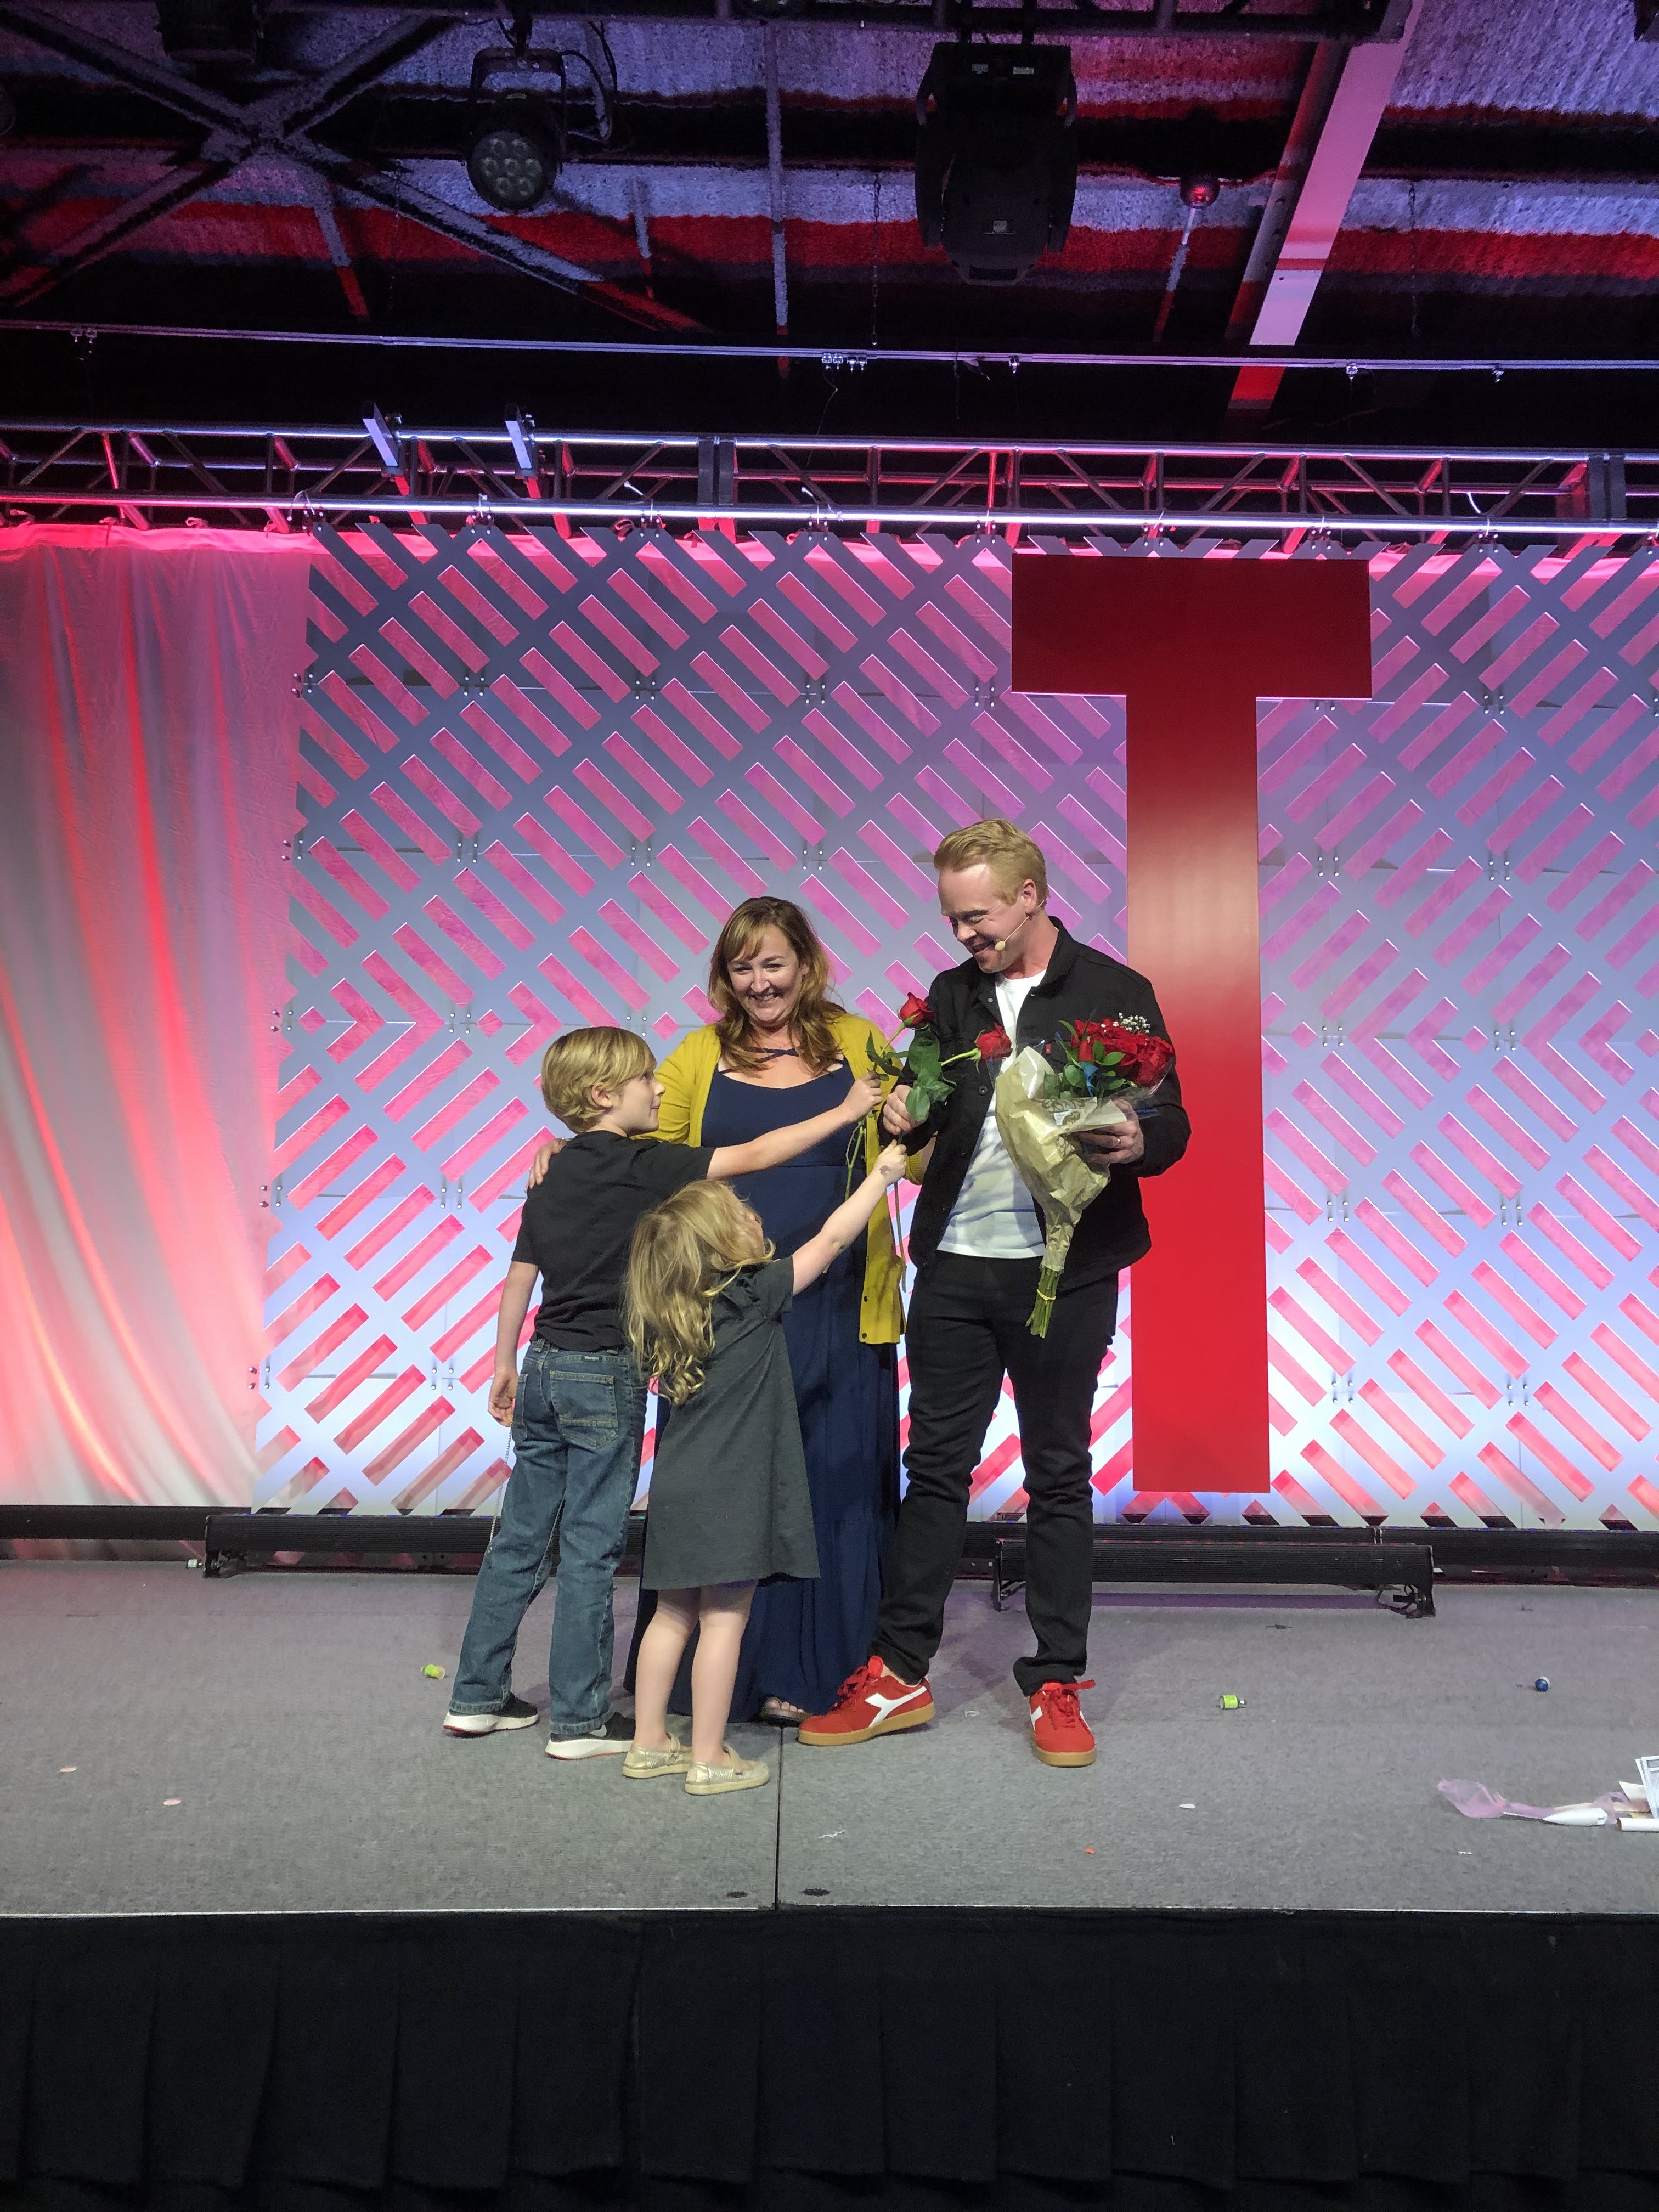 Jeff Goins on stage with wife, son and daughter at the closing of Tribe Conference.